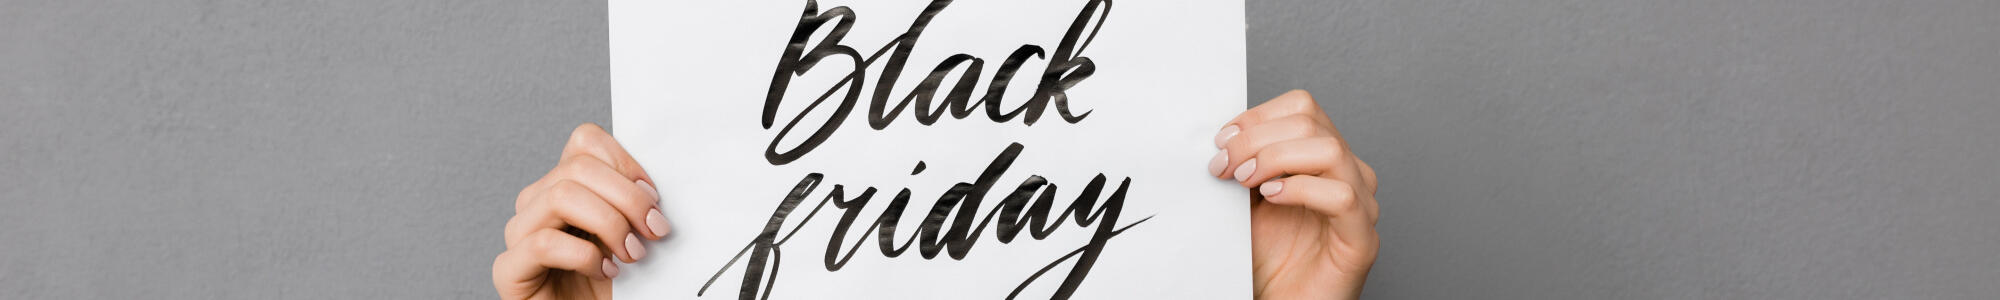 Offer for Black Friday at a 4-star Hotel in Bologna